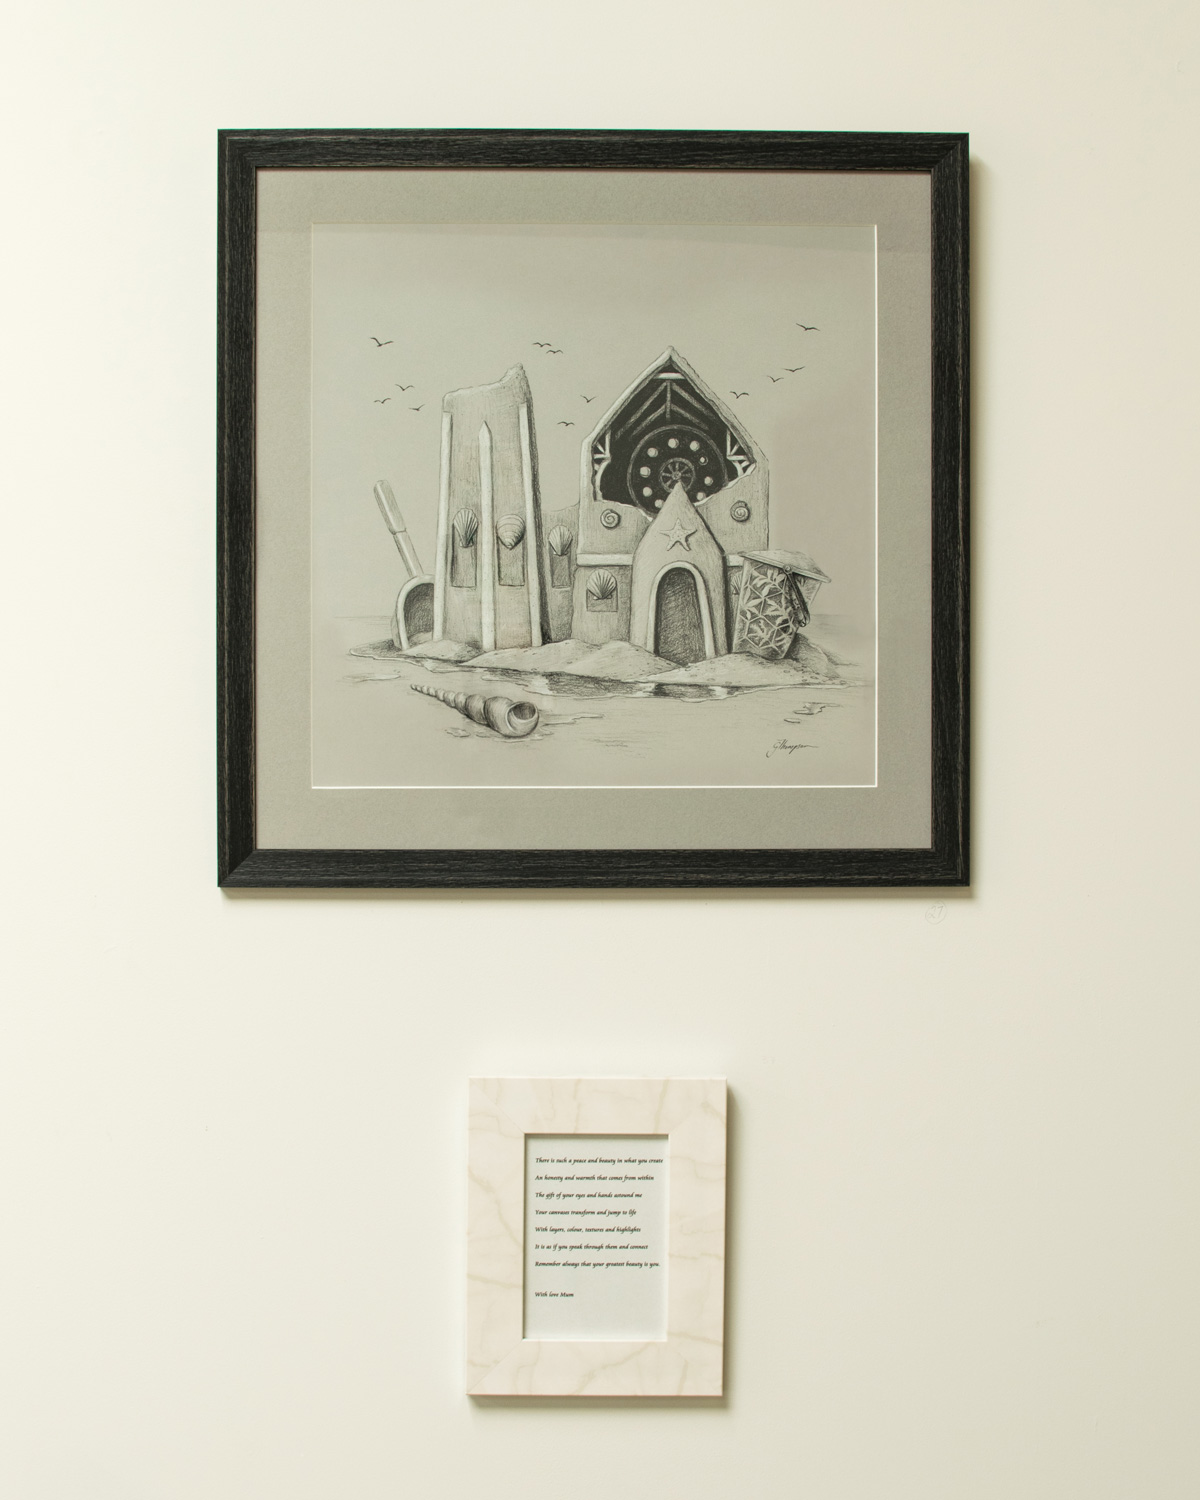 The framed work hung at the I AM / WE ARE exhibition at the Welder Collective.